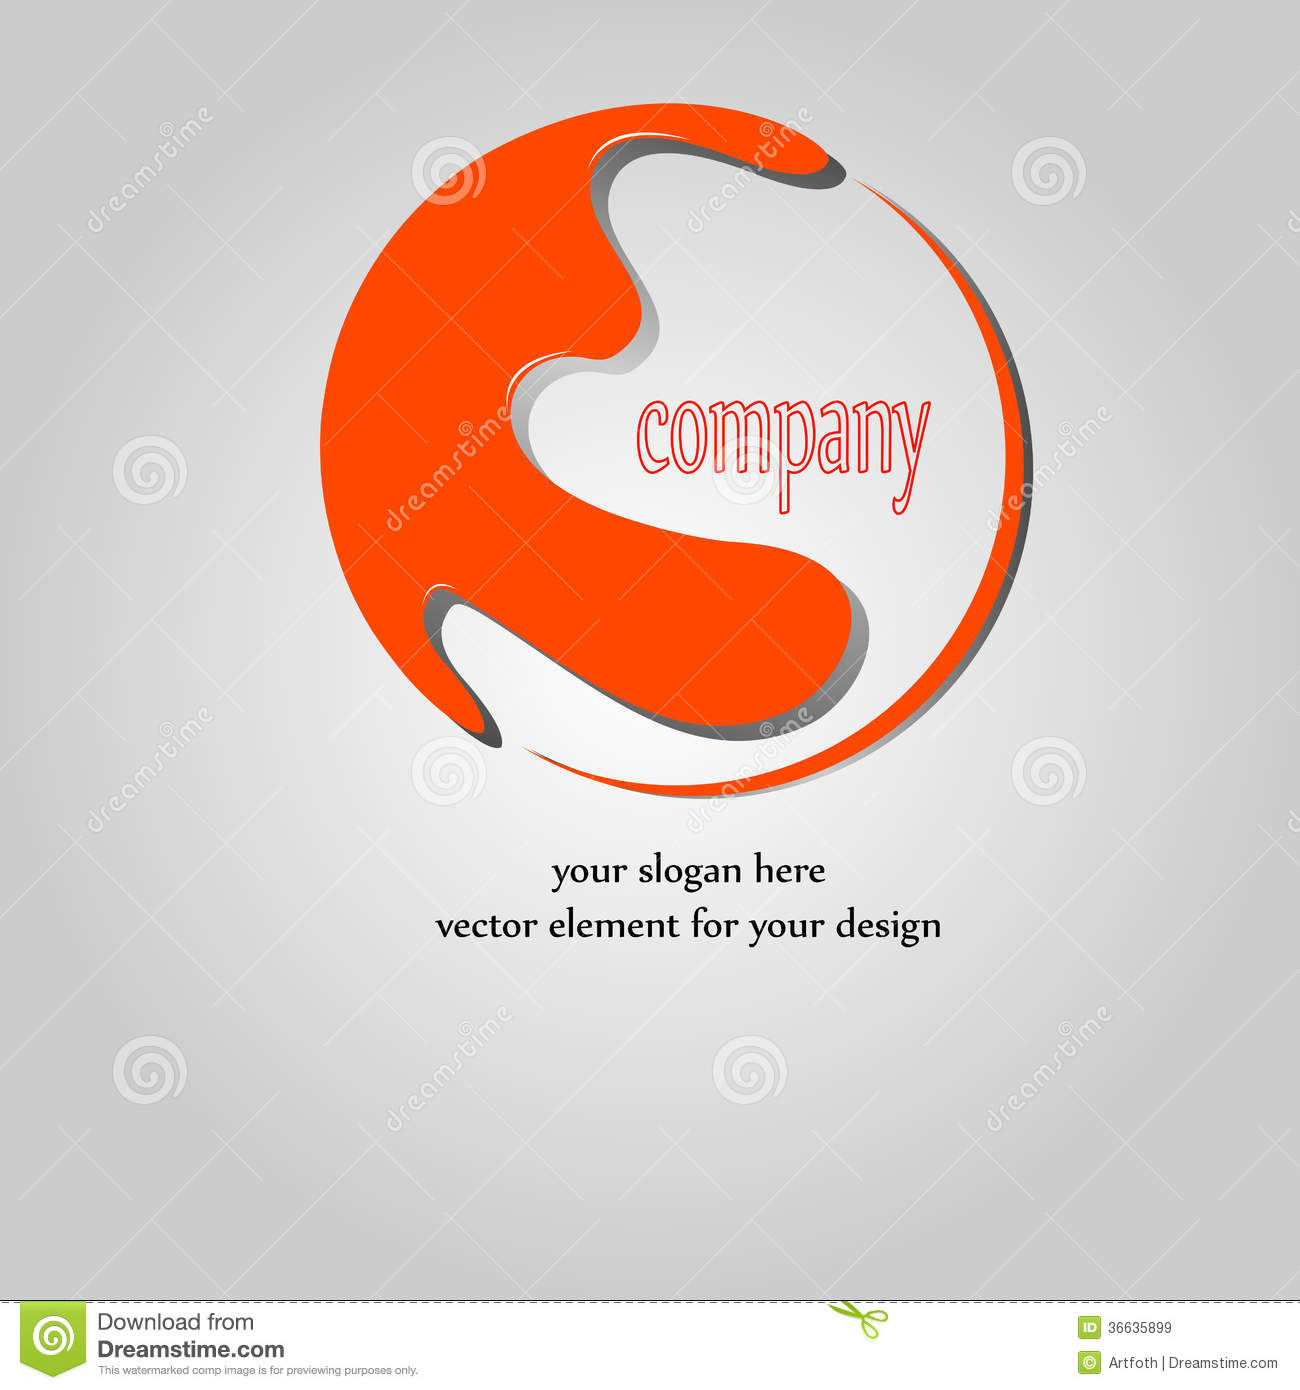 Company name design royalty free stock images image for Design firm names